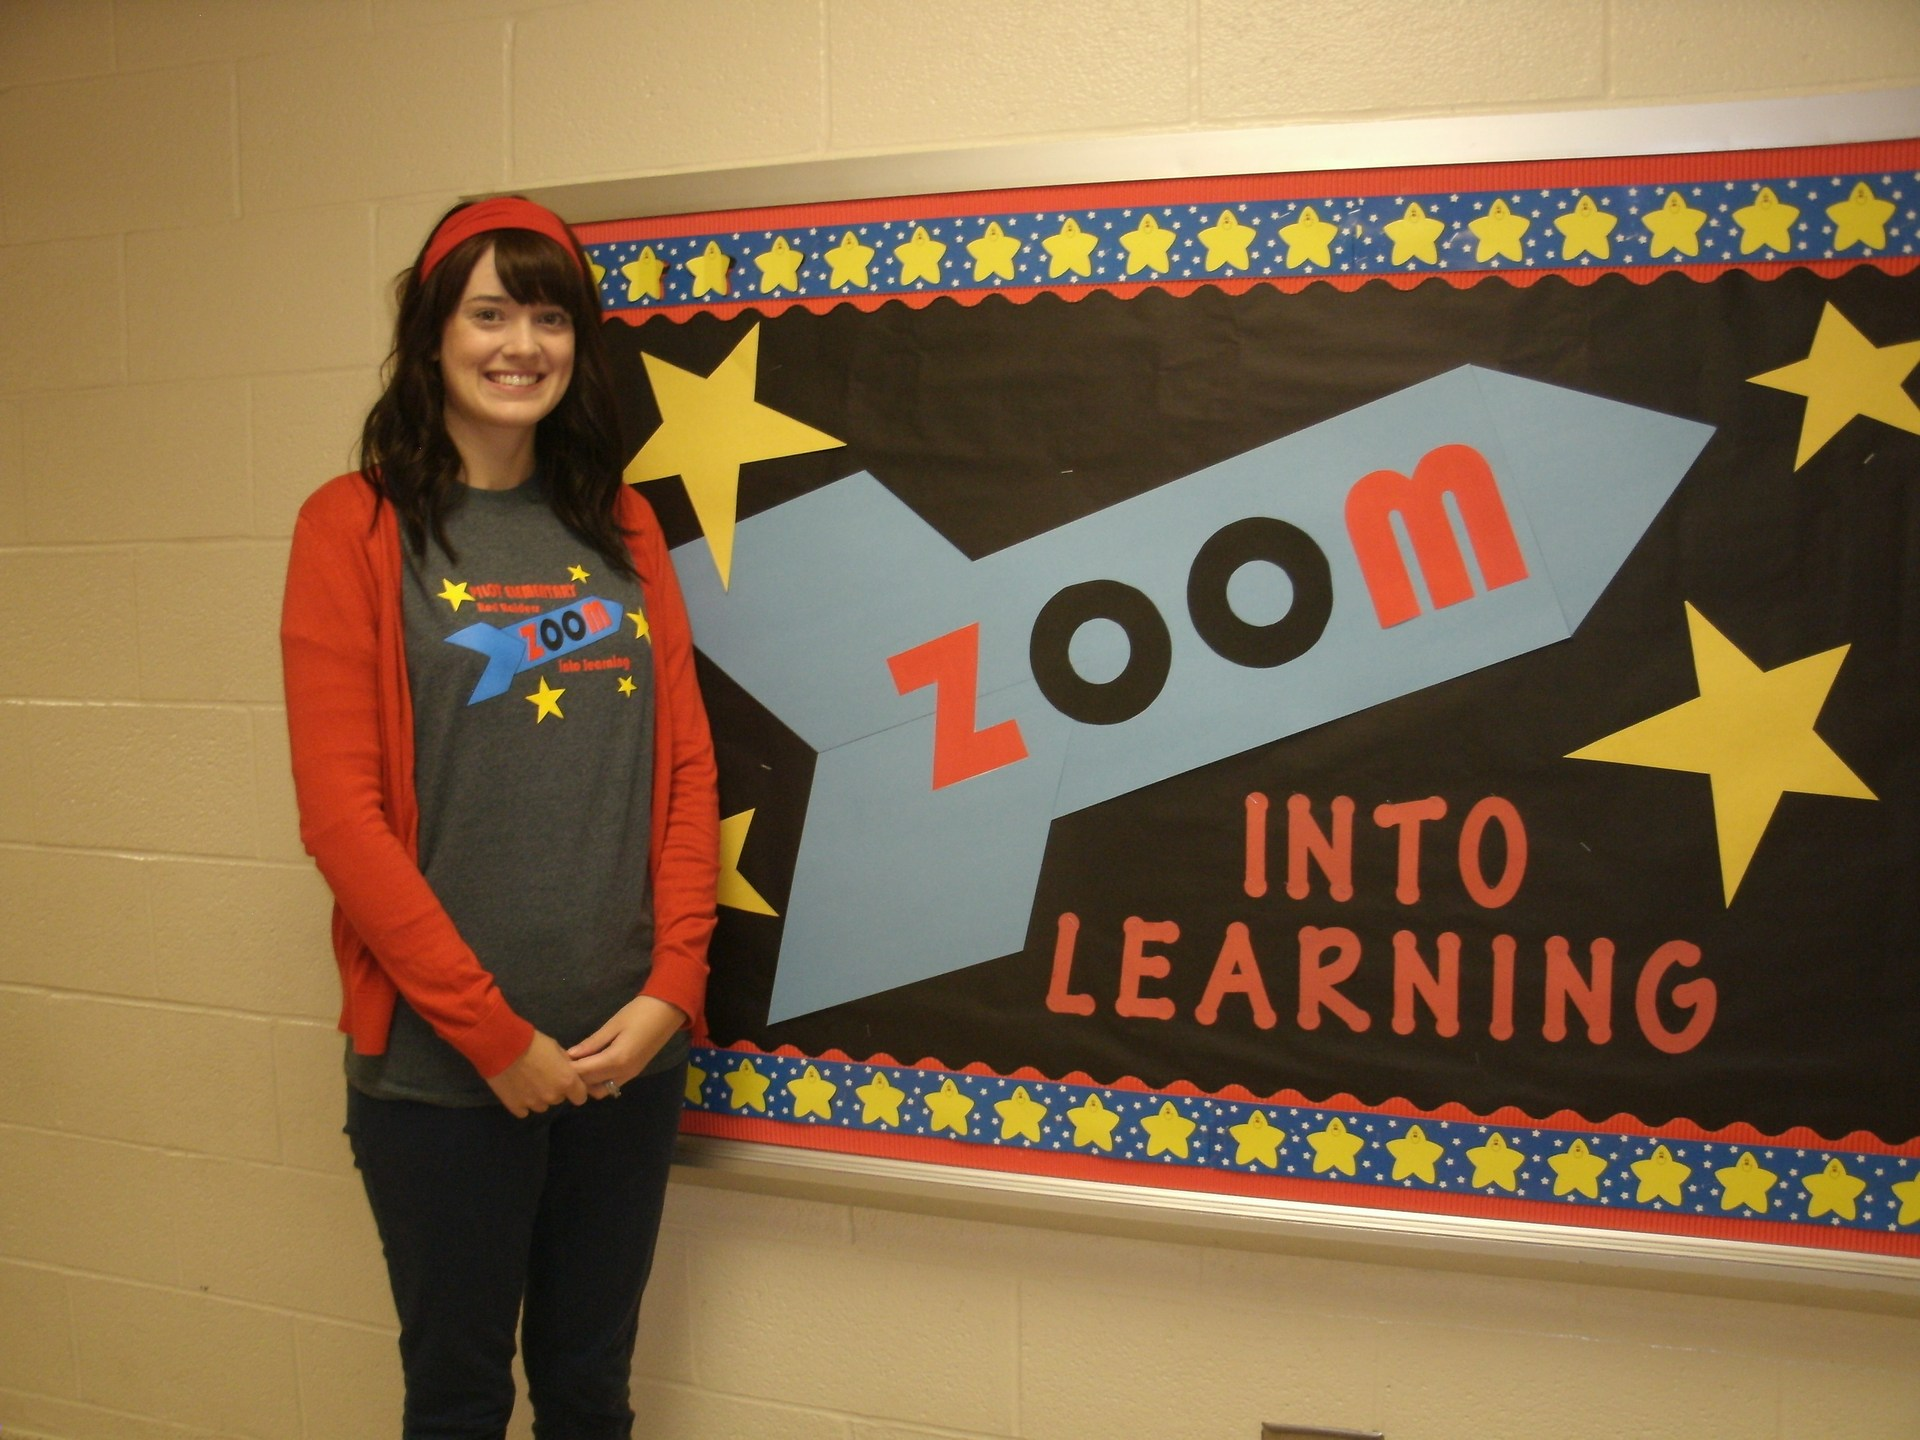 Erica Altamirano is standing in front of a bulletin board.